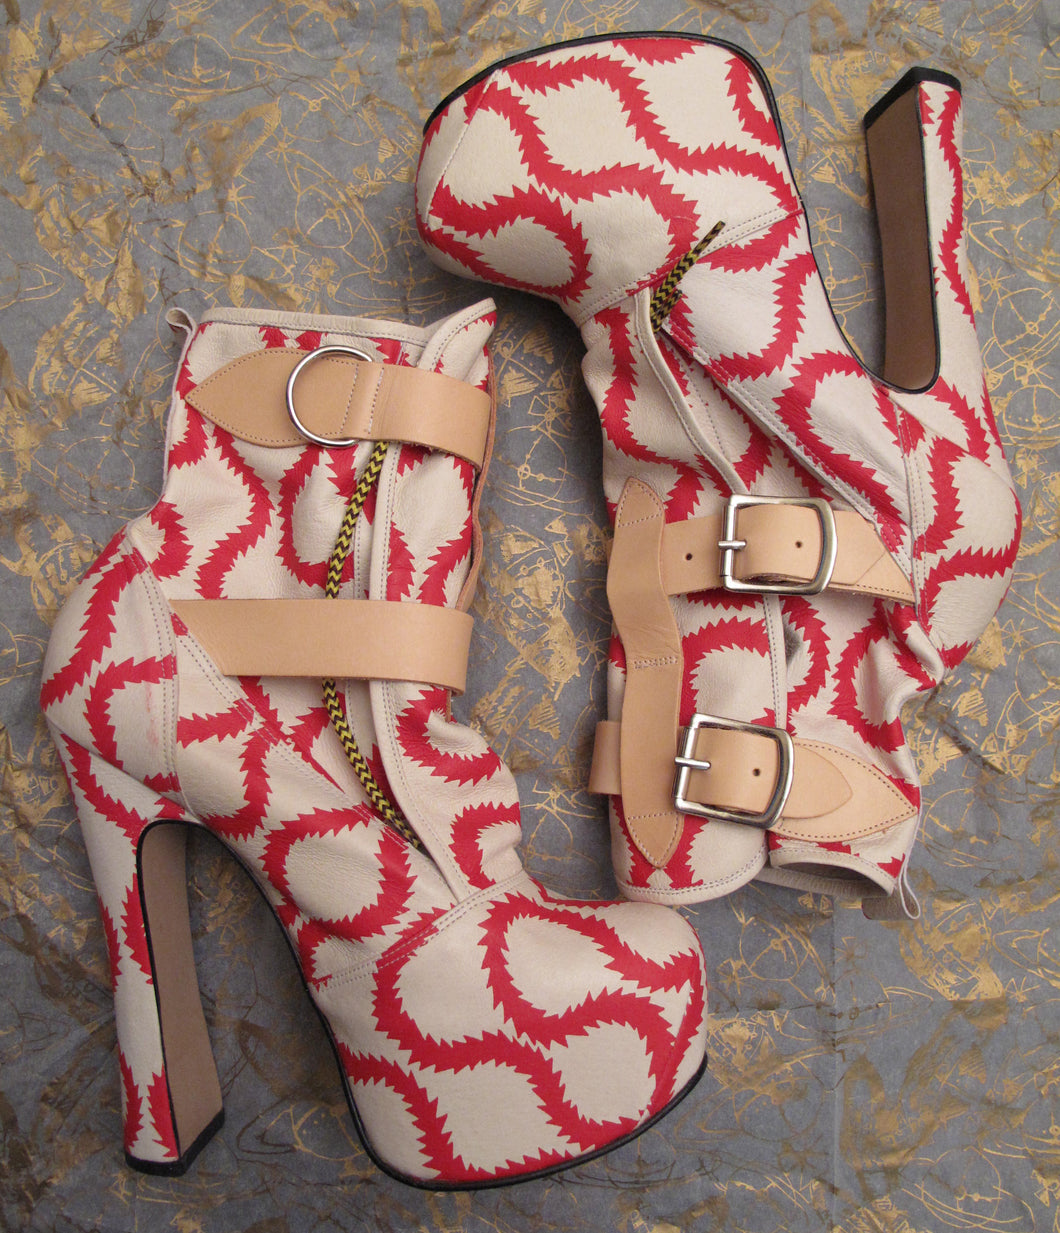 Vivienne Westwood Gold Label Elevated Bondage Boots in Red and White Squiggle Leather